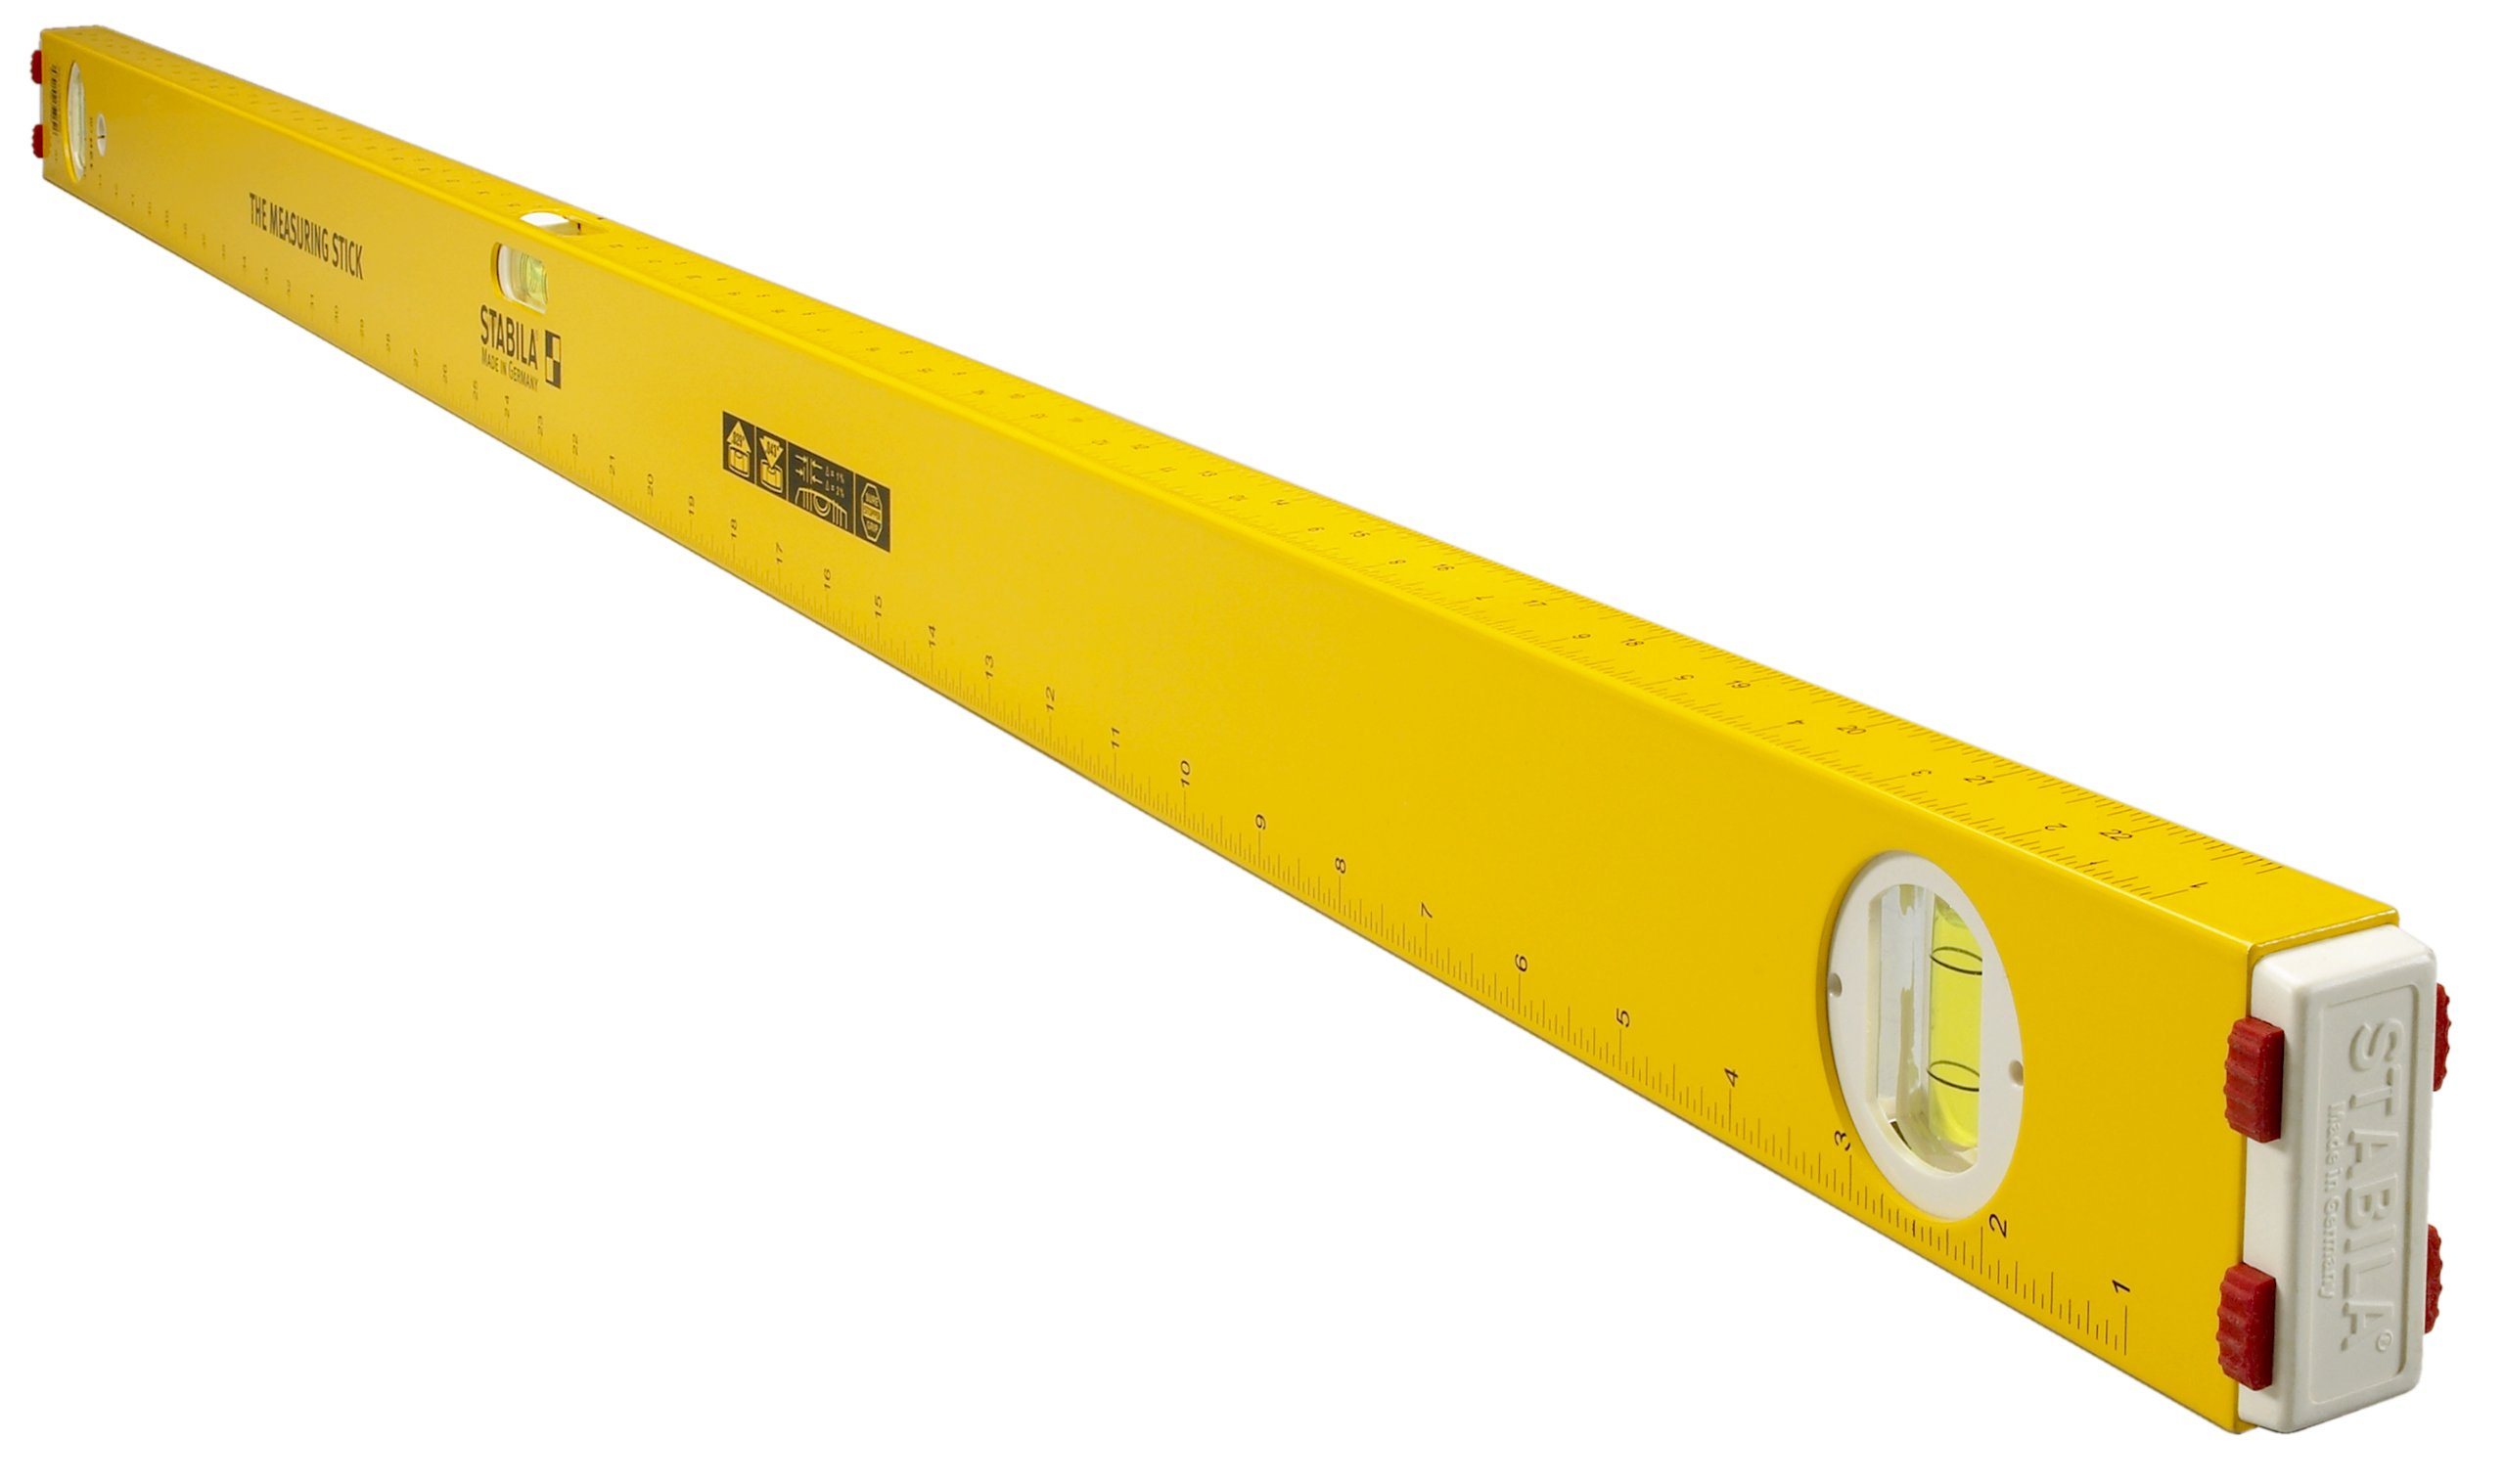 Stabila 29148 48-Inch Measuring Stick Level with 3 Layout Scales